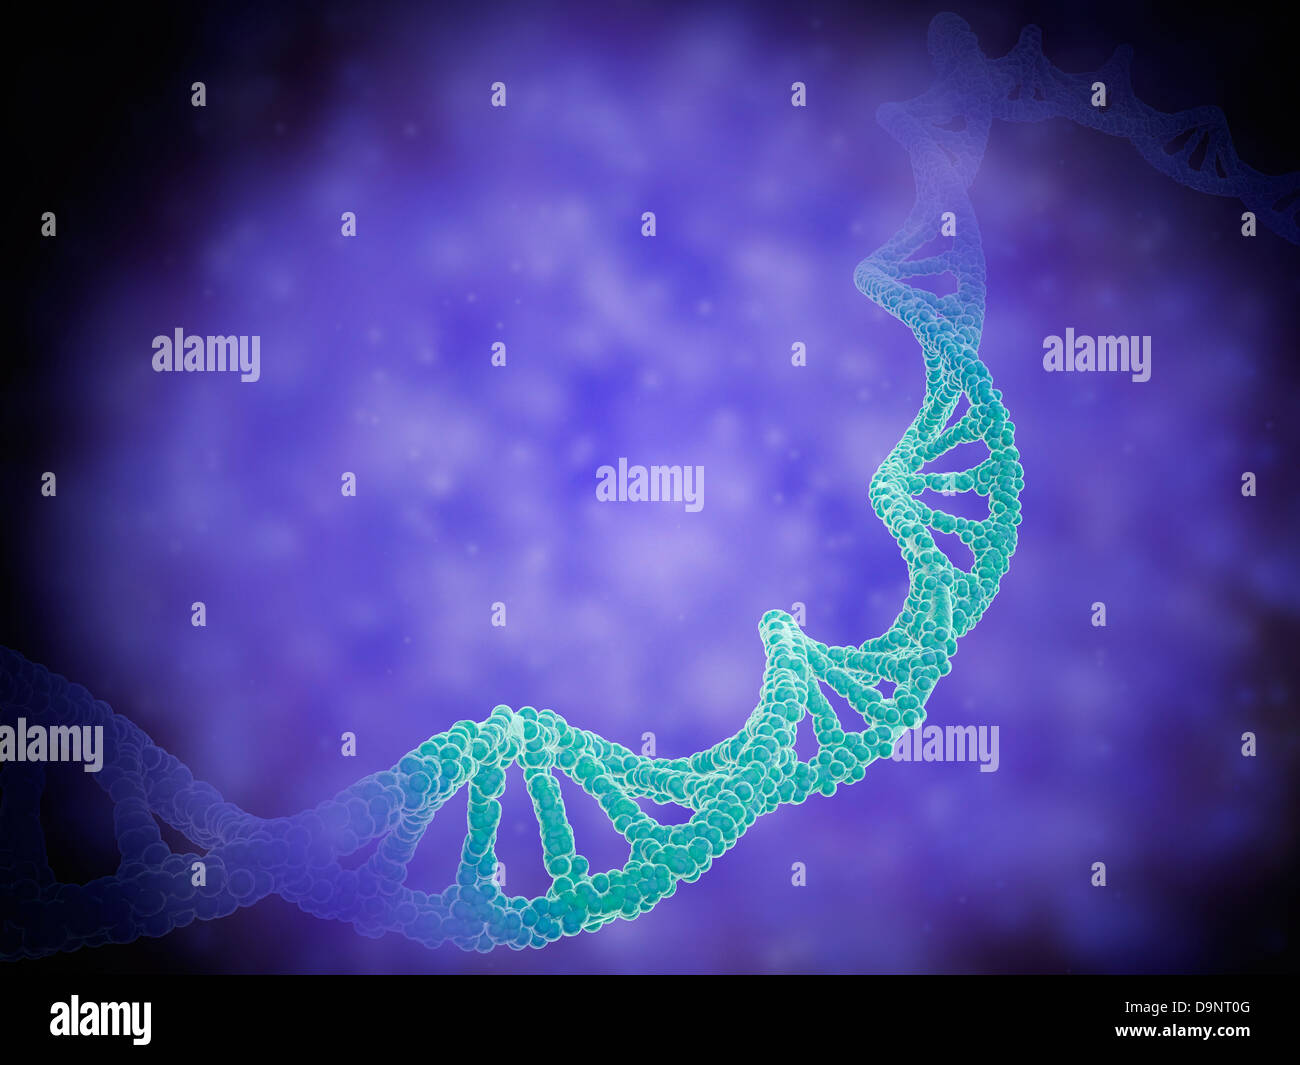 Stylized view of strands of human DNA or deoxyribonucleic acid. - Stock Image